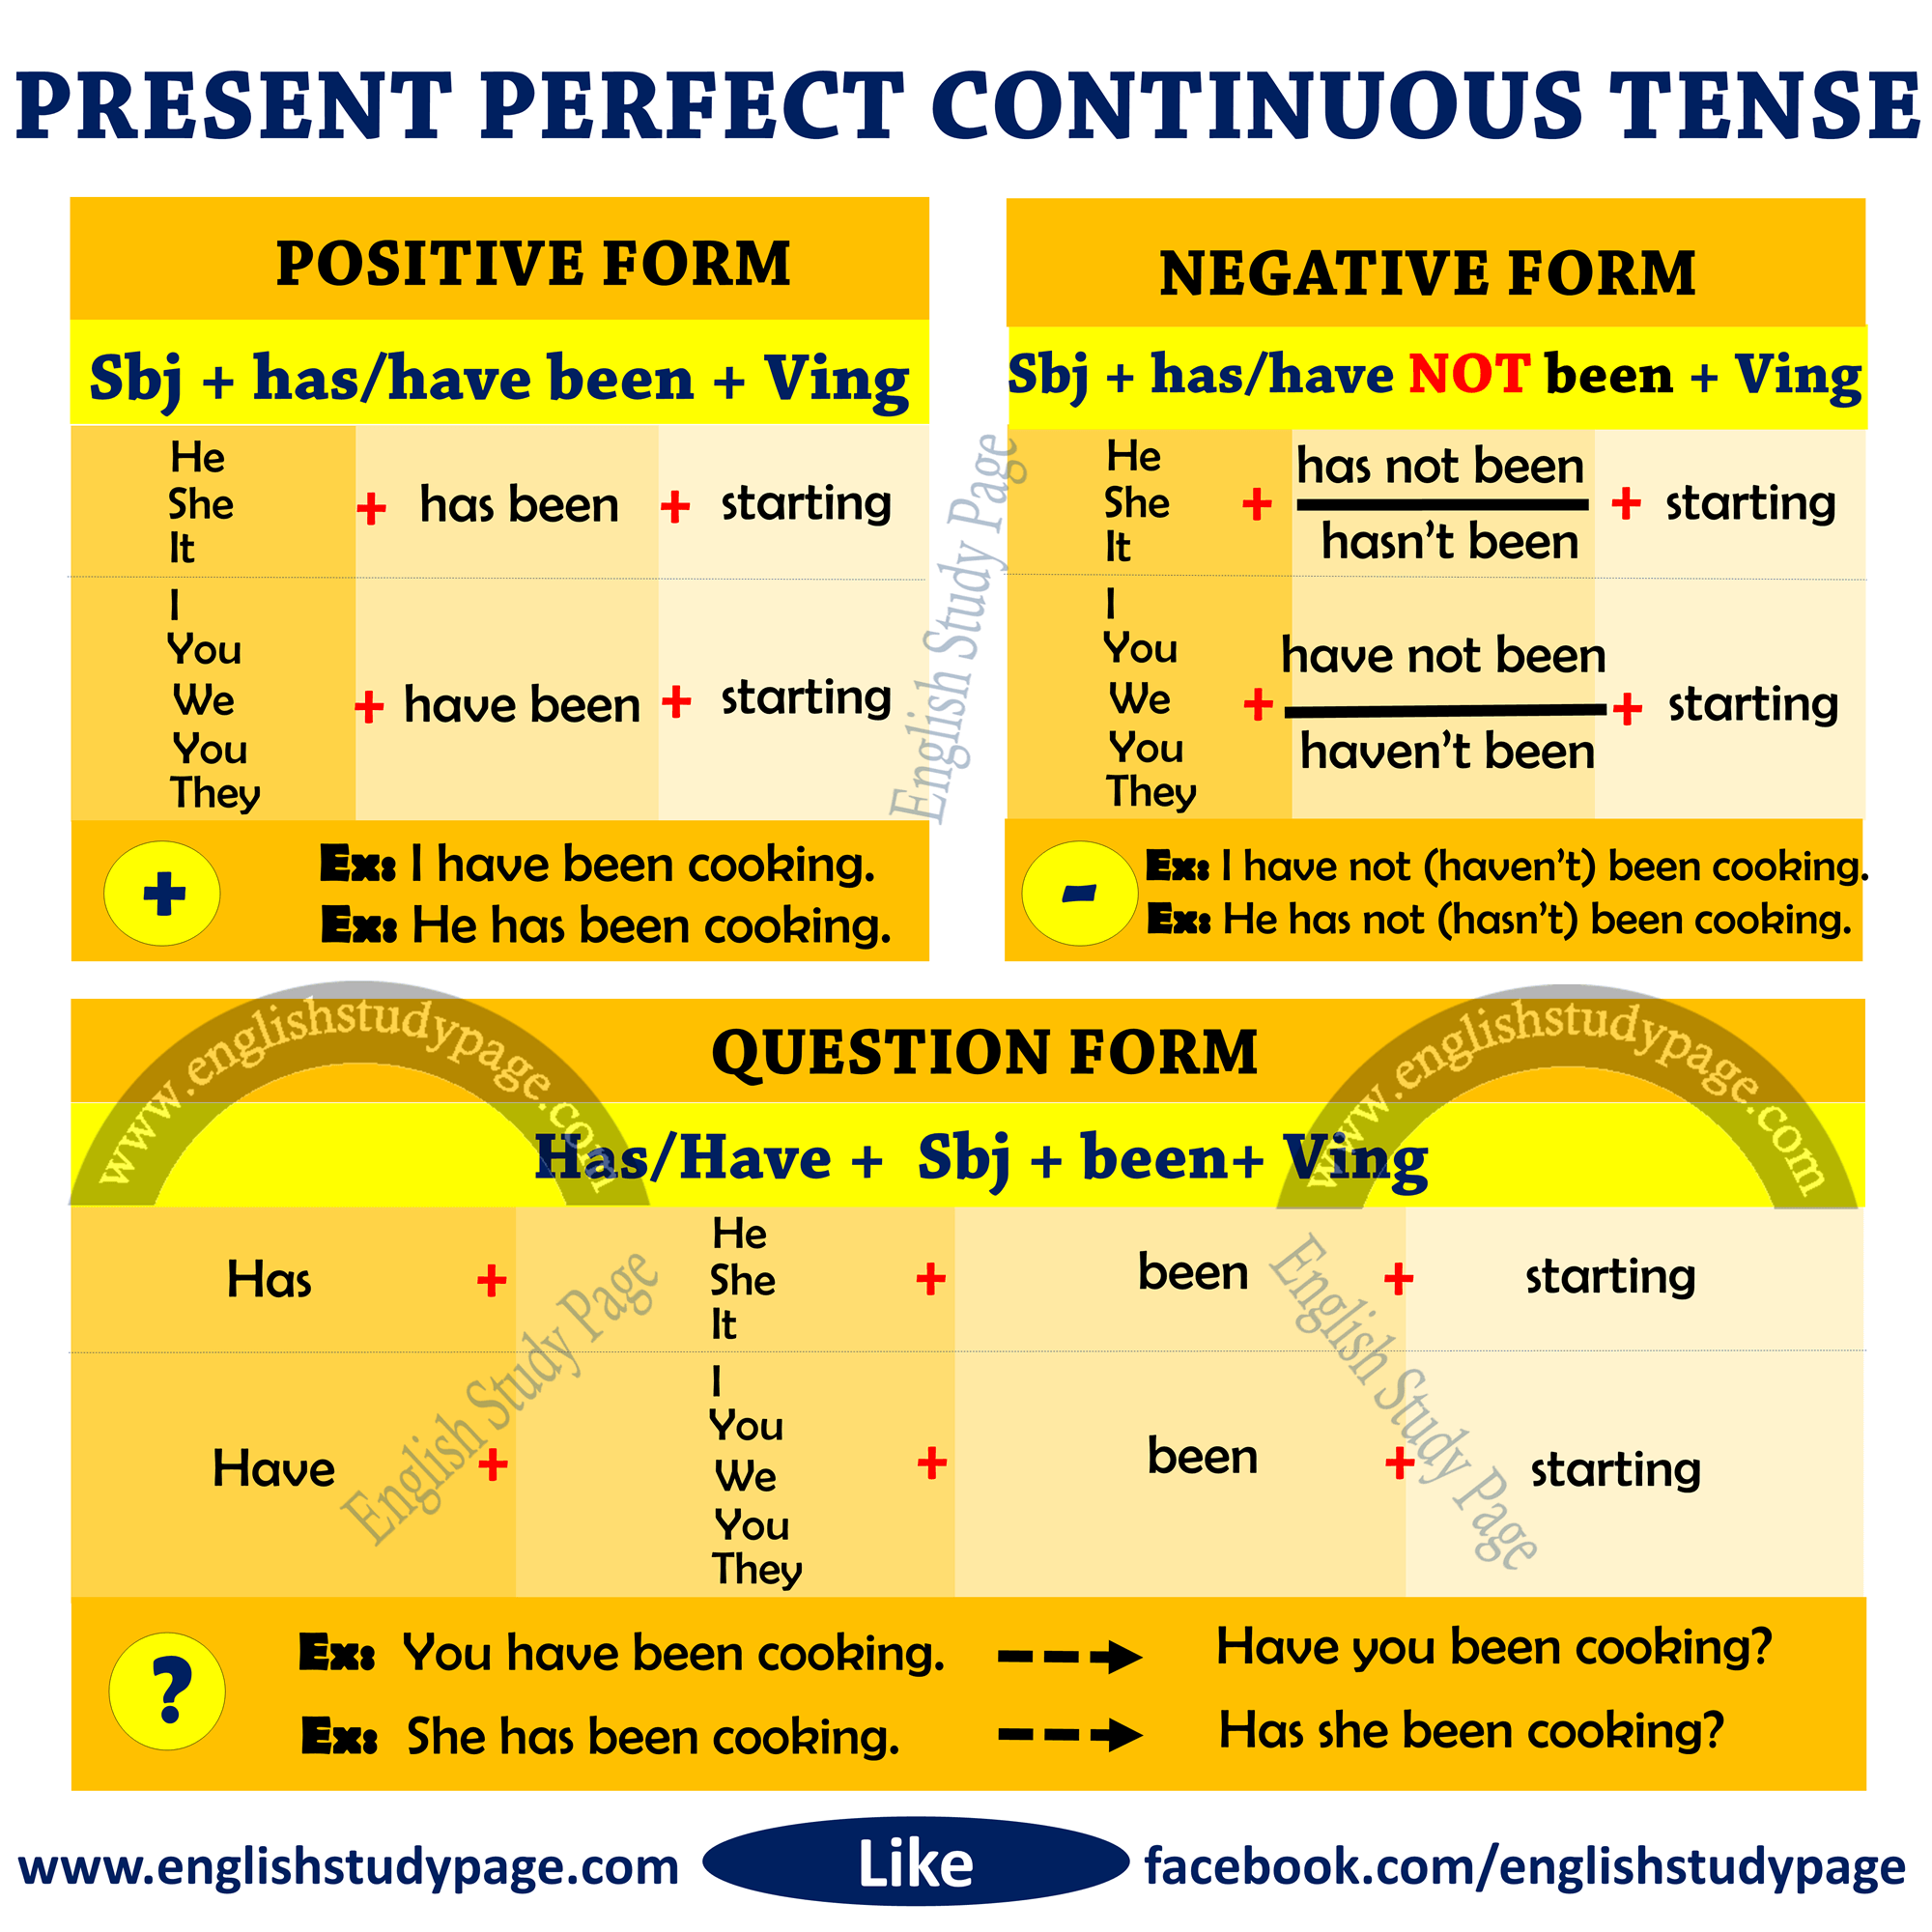 Structure Of Present Perfect Continuous Tense English Study Page